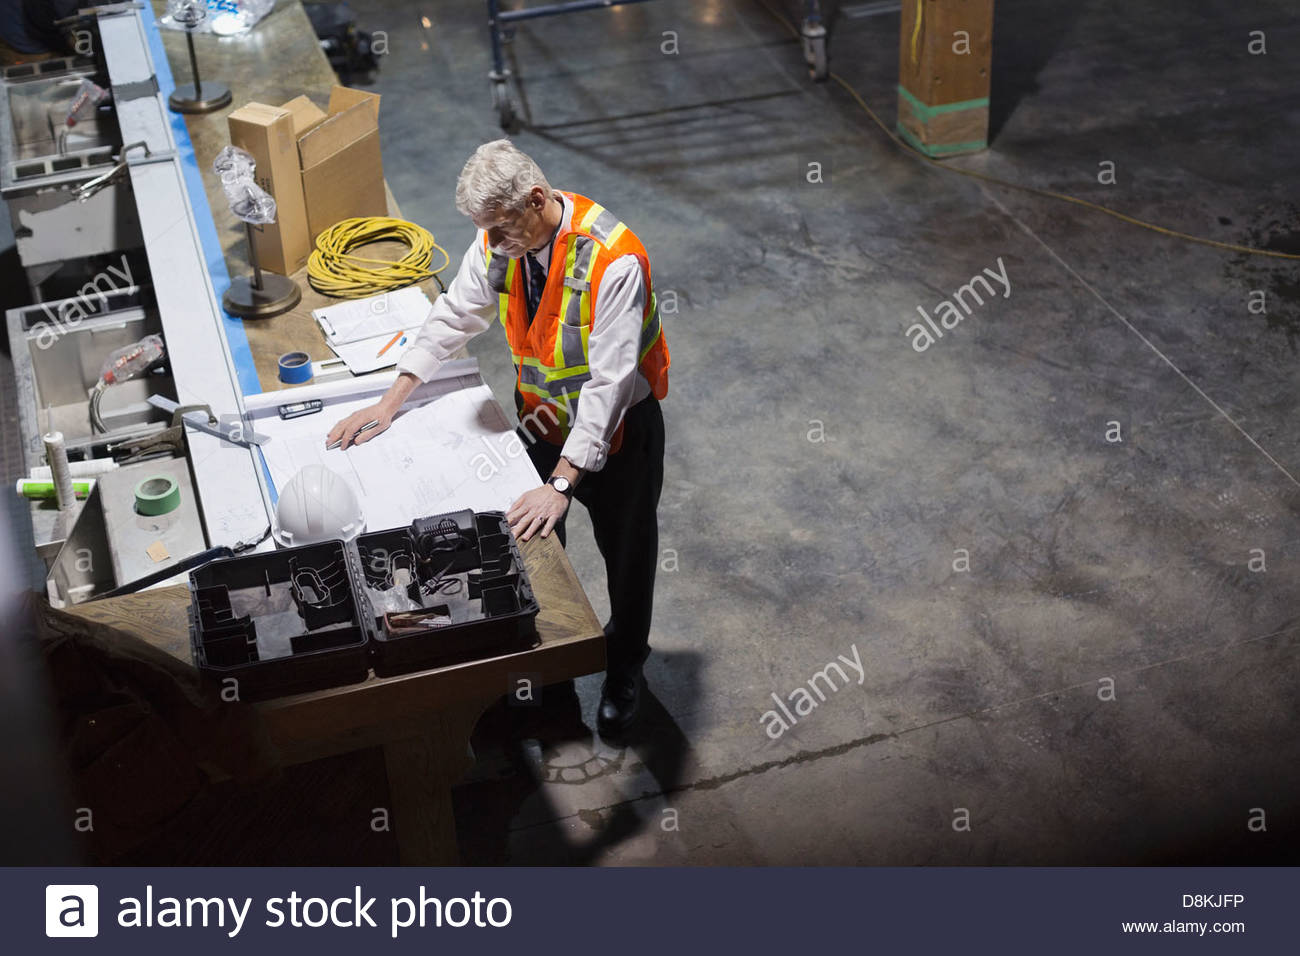 Male architect working on blueprint at construction site - Stock Image